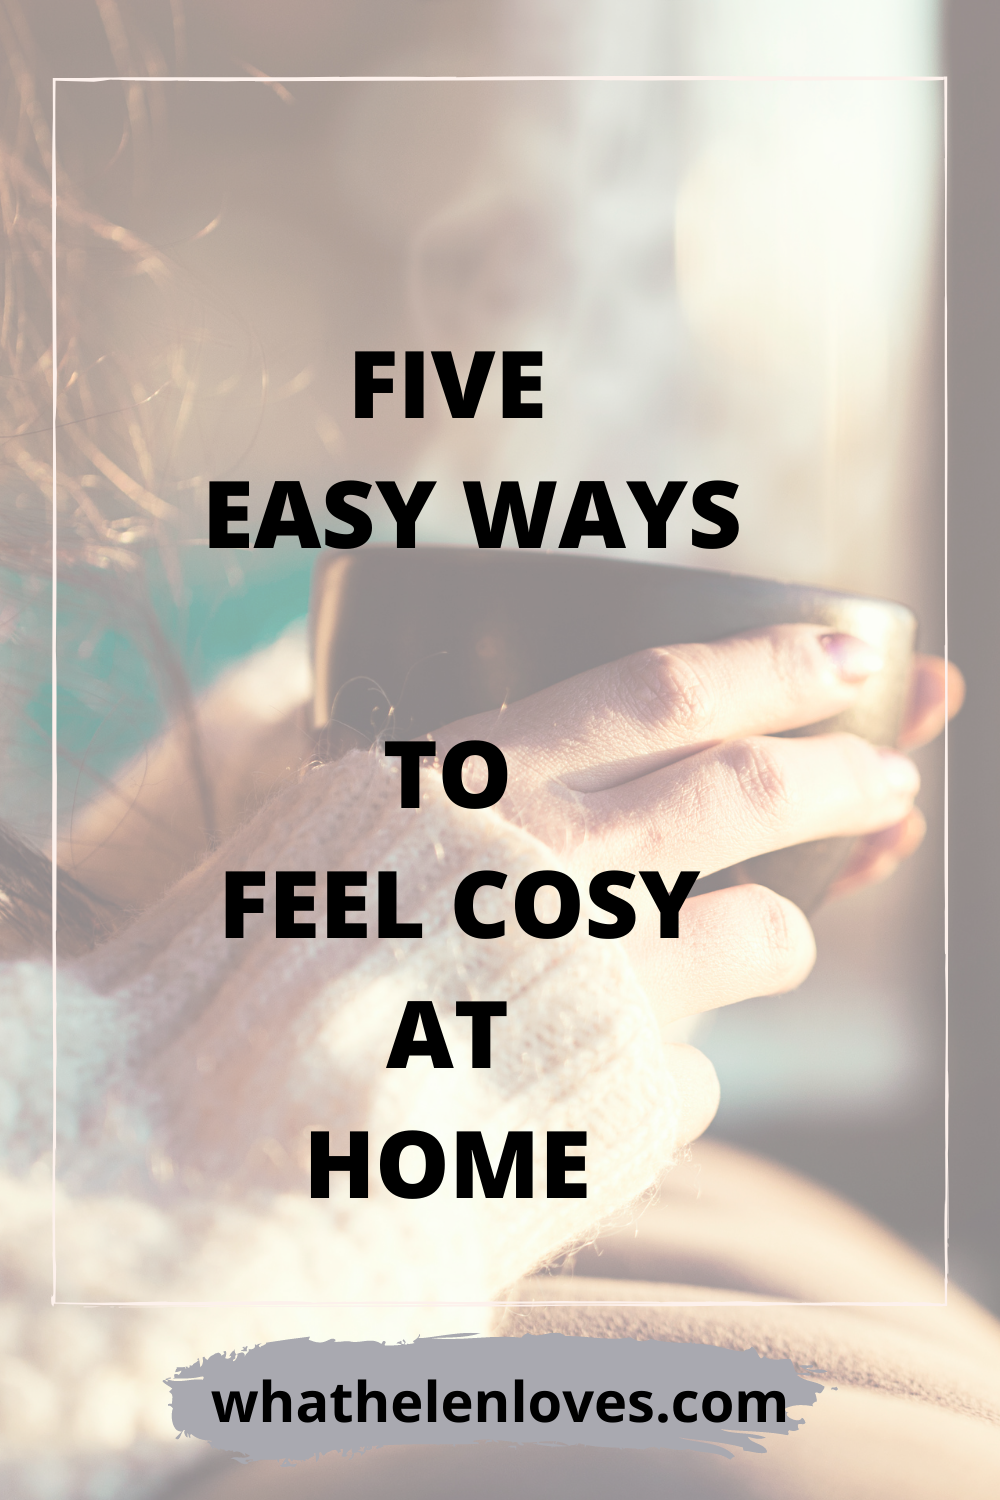 Pinterest pin for a post about five easy ways to feel cosy at home.